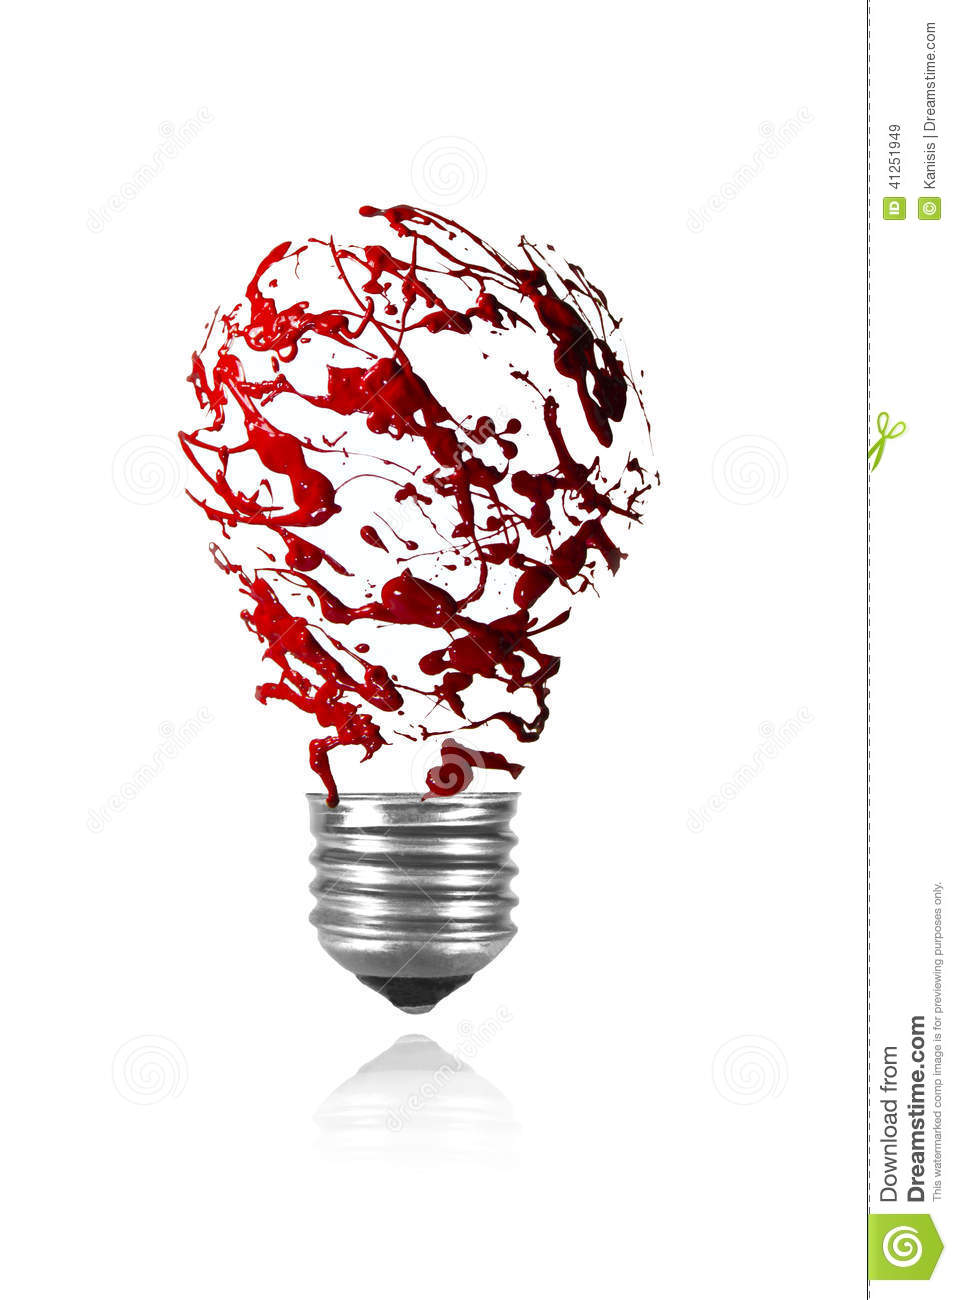 red paint splah made light bulb stock illustration image 41251949. Black Bedroom Furniture Sets. Home Design Ideas